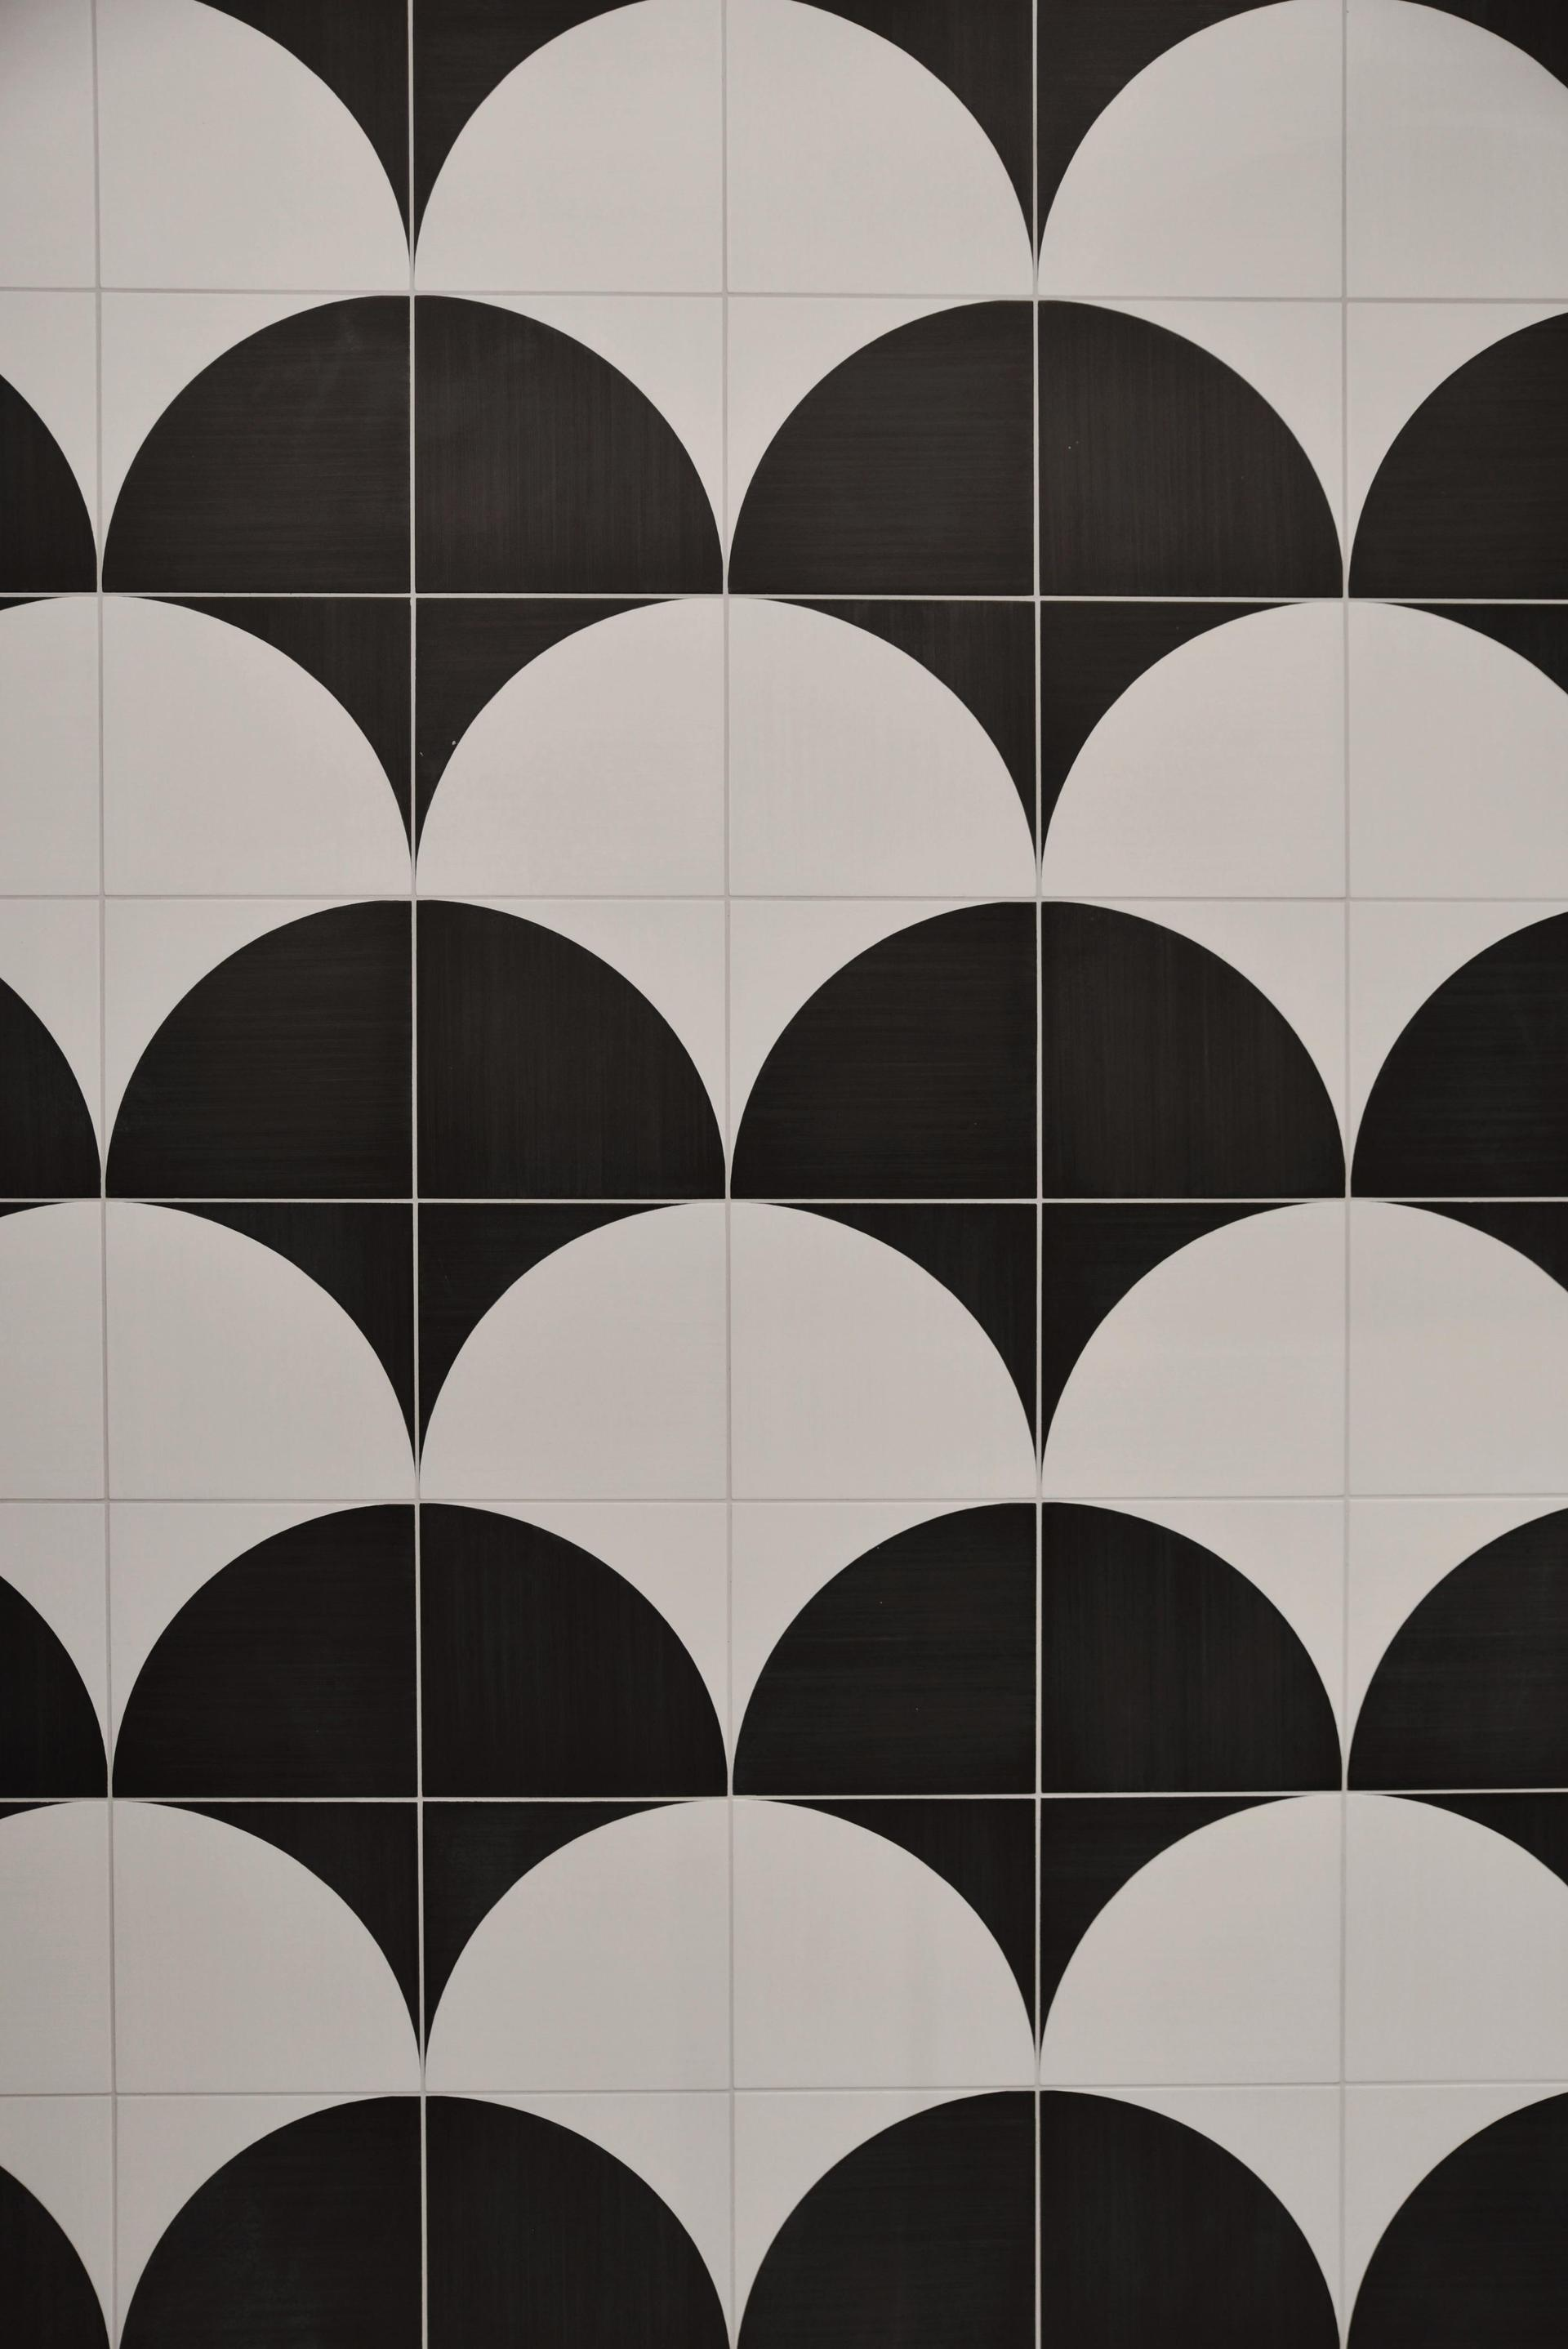 Black and White Tiles for a Guesthouse in the Heart of Naple